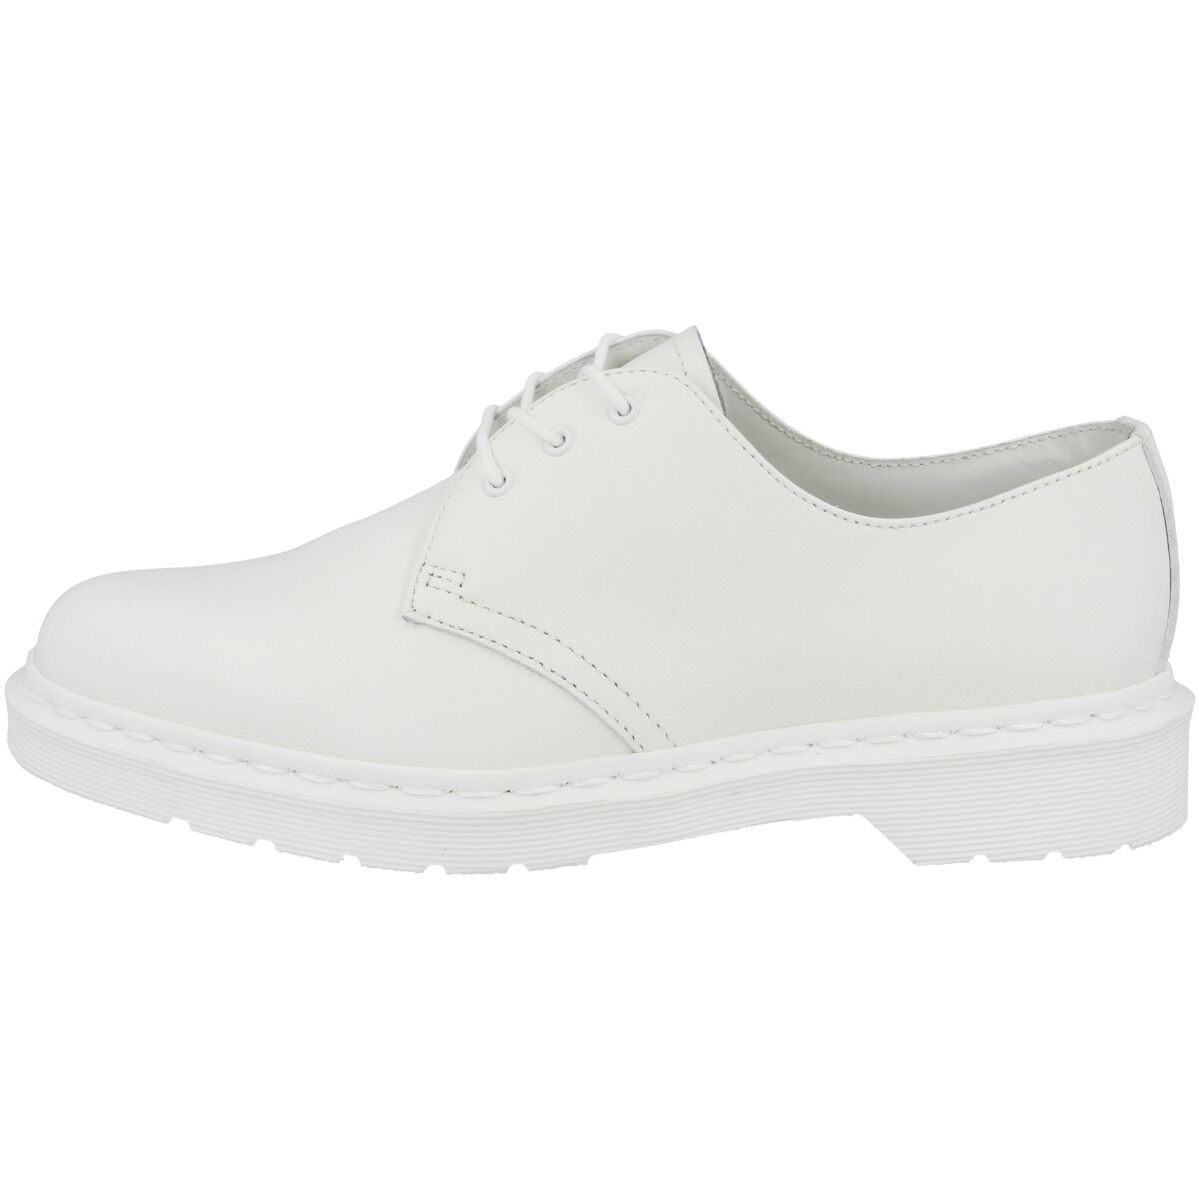 Dr Doc Martens 1461 Mono Cuir Unisexe Chaussures bottes 3 trous blanc Smooth 14346100